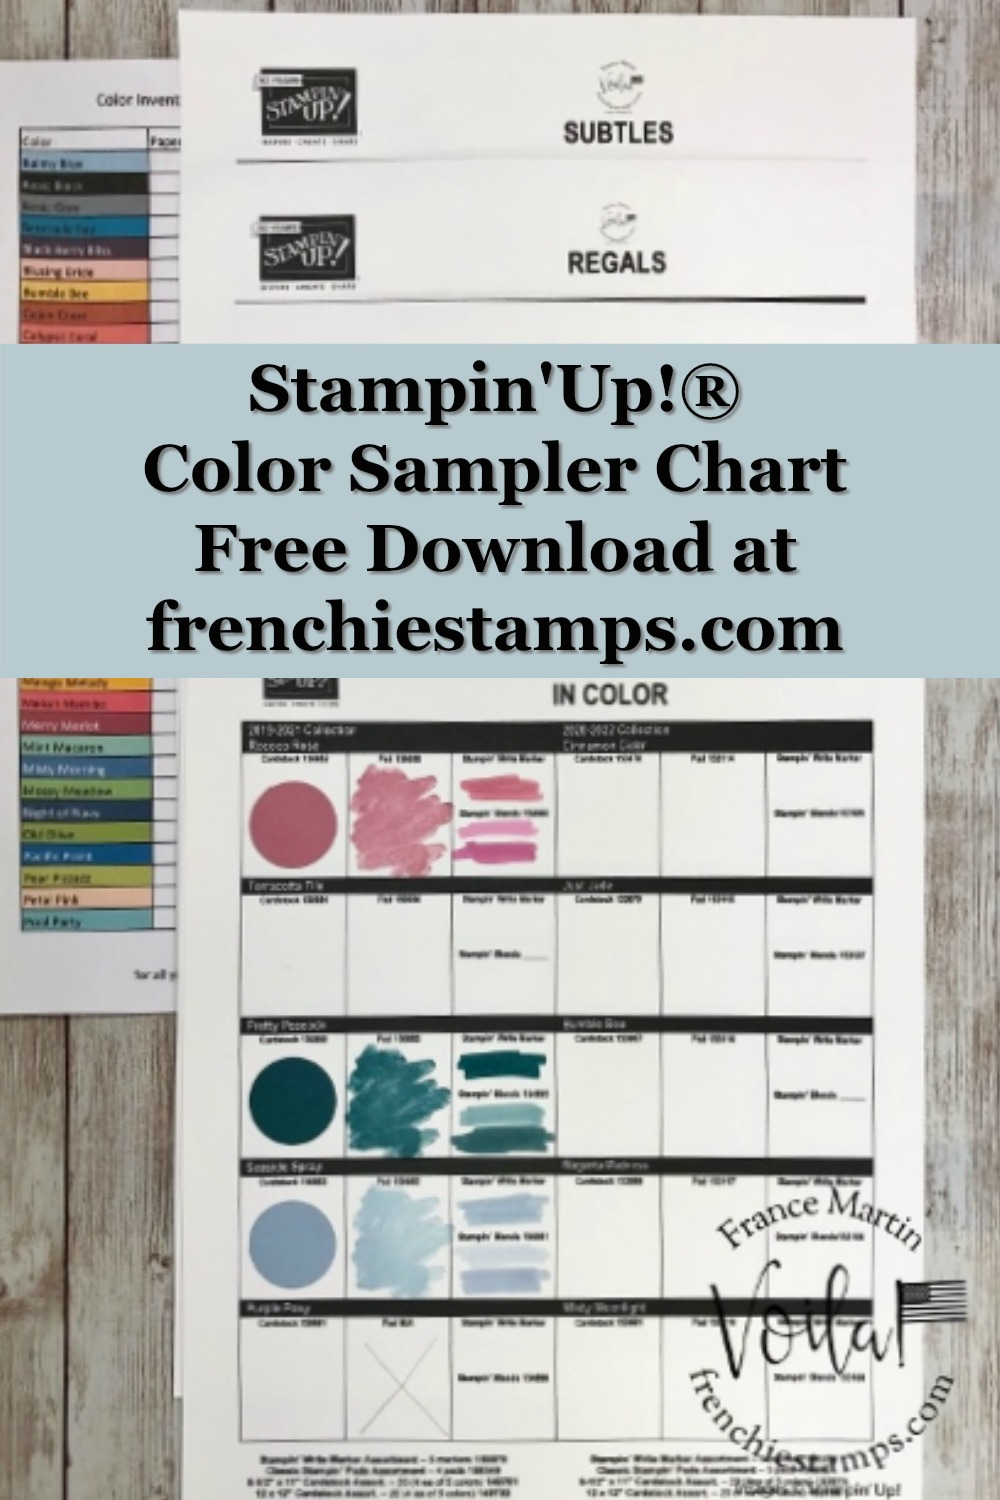 Color Sampler Chart and Color Inventory Sheet